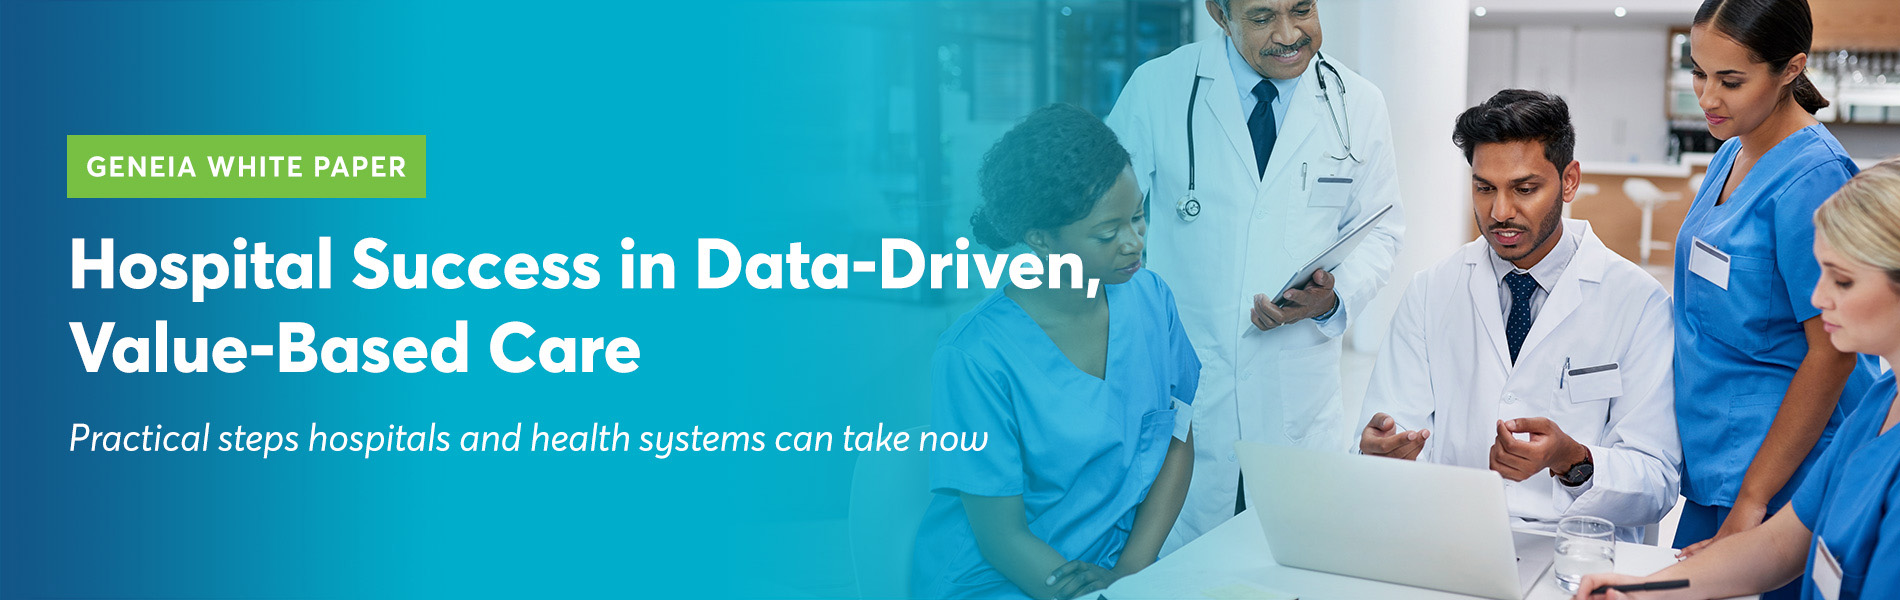 Hospitals and health systems need more than the EHR to succeed in value-based care. A 360-degree patient profile - a key success driver - requires claims data and social determinants of health (SDoH).